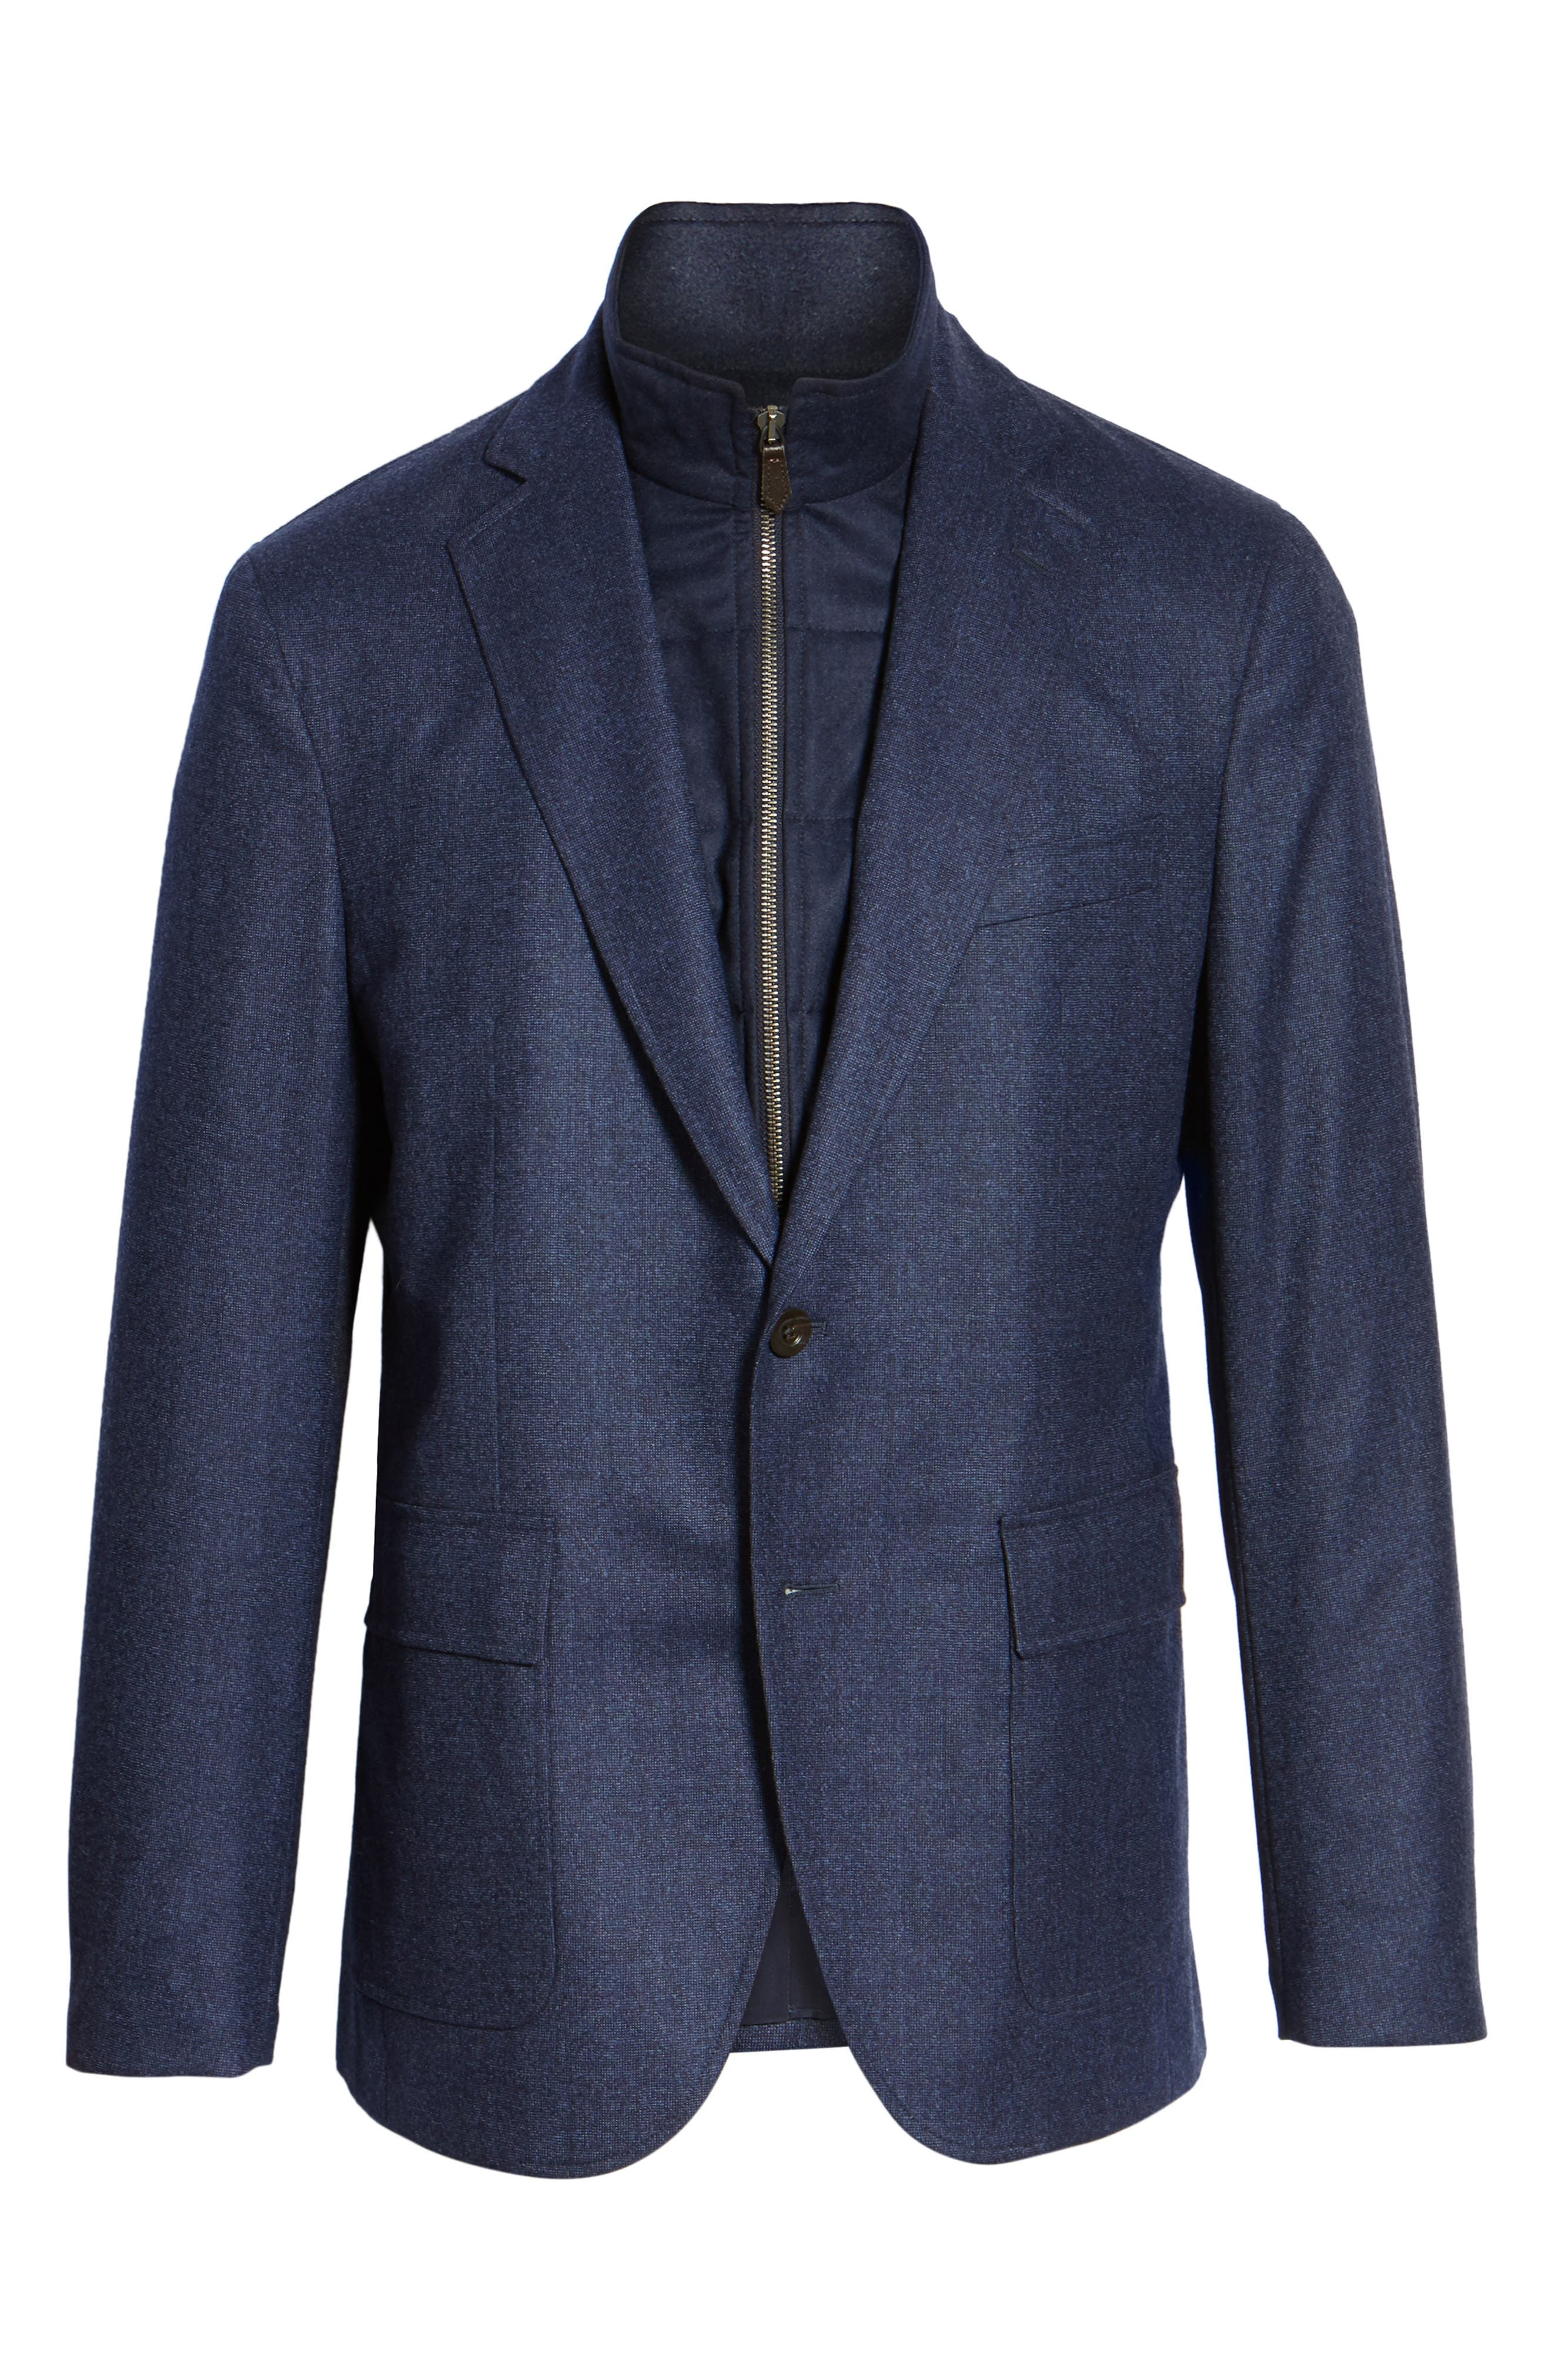 Aaron Classic Fit Wool Blazer,                             Alternate thumbnail 5, color,                             410